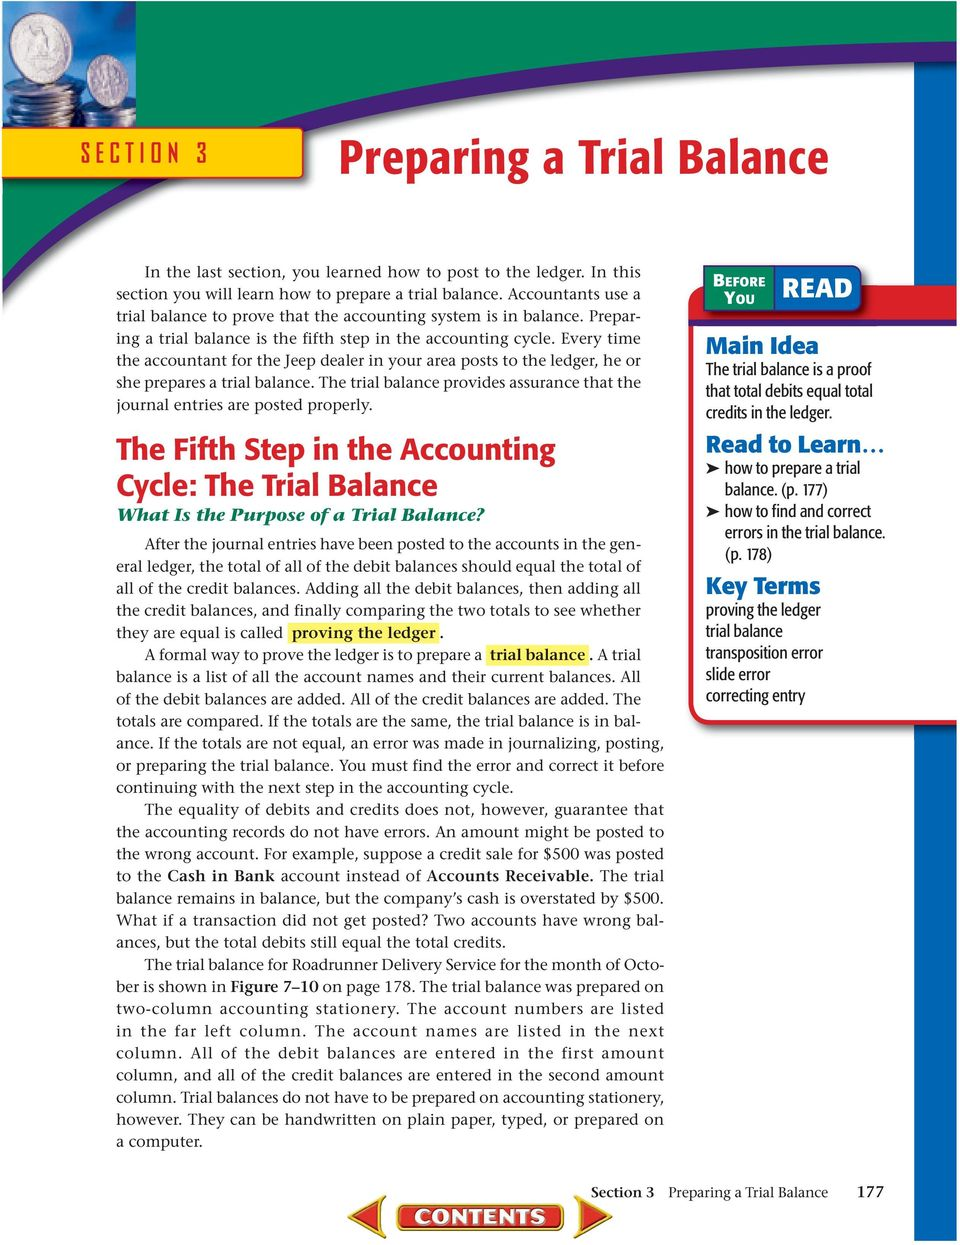 Every time the accountant for the Jeep dealer in your area posts to the ledger, he or she prepares a trial balance. The trial balance provides assurance that the journal entries are posted properly.